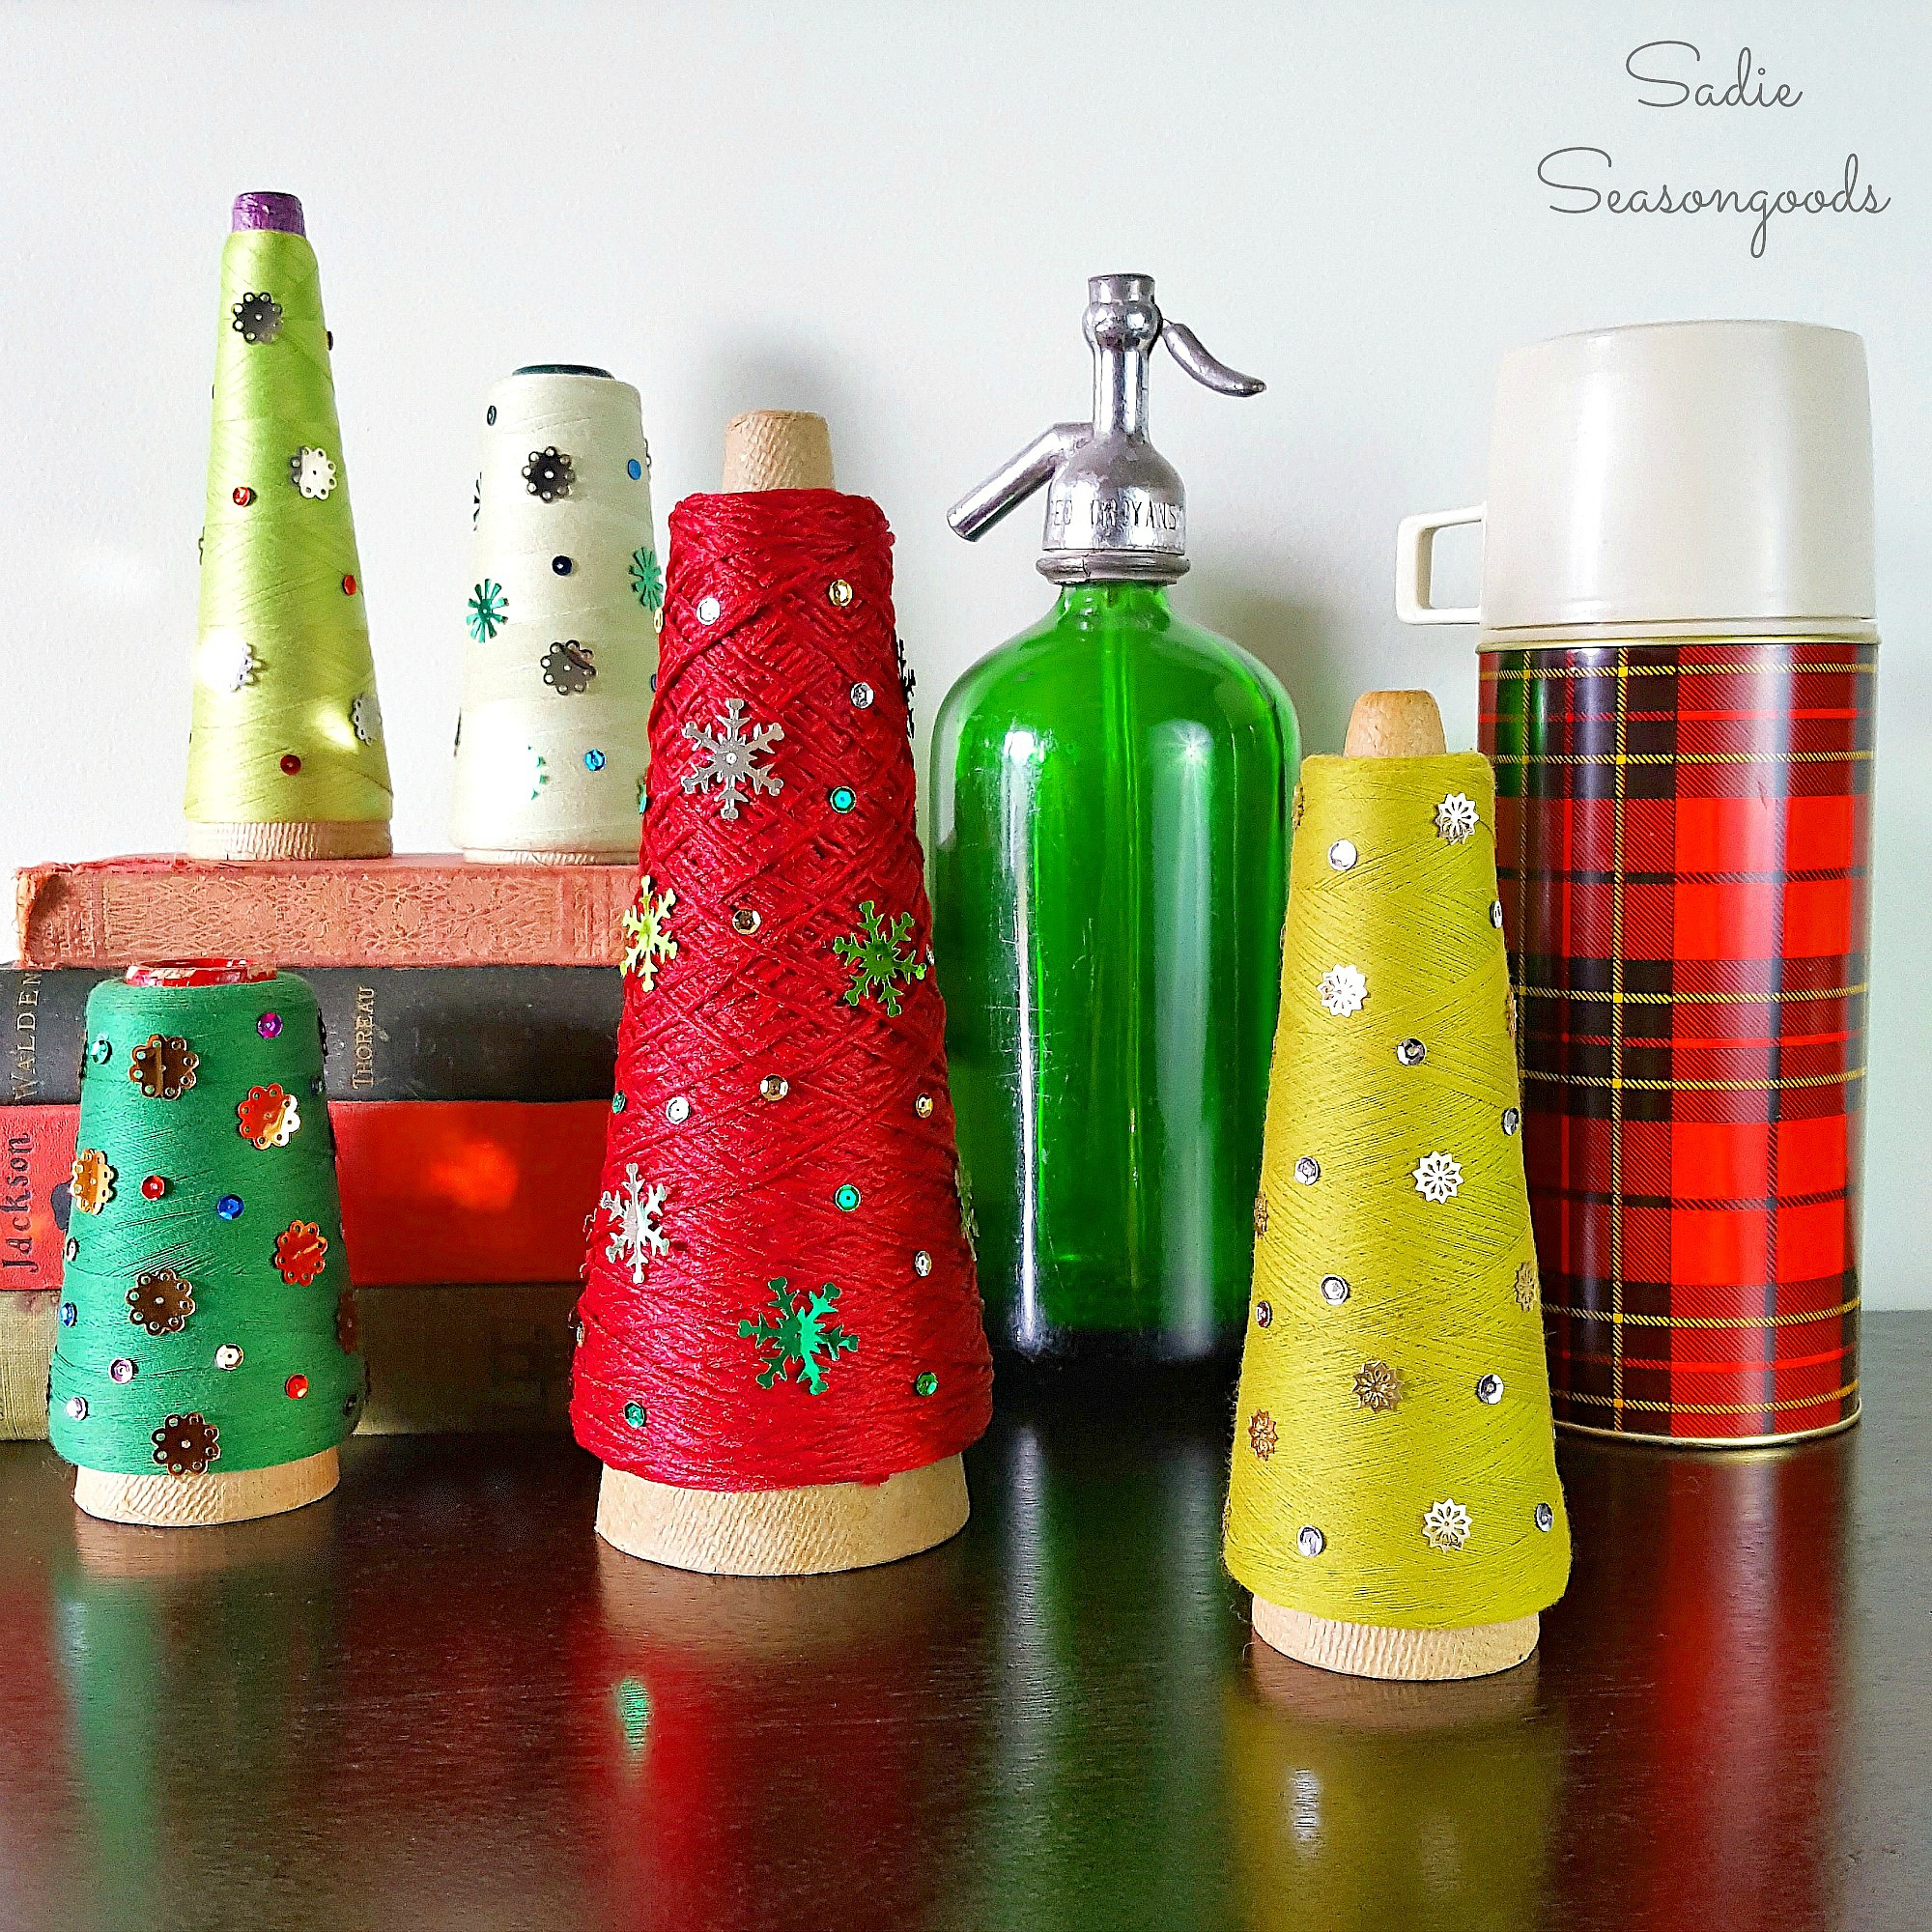 Vintage_serger_cone_thread_repurposed_and_upcycled_as_DIY_Christmas_trees_with_vintage_sequins_holiday_decor_by_Sadie_Seasongoods